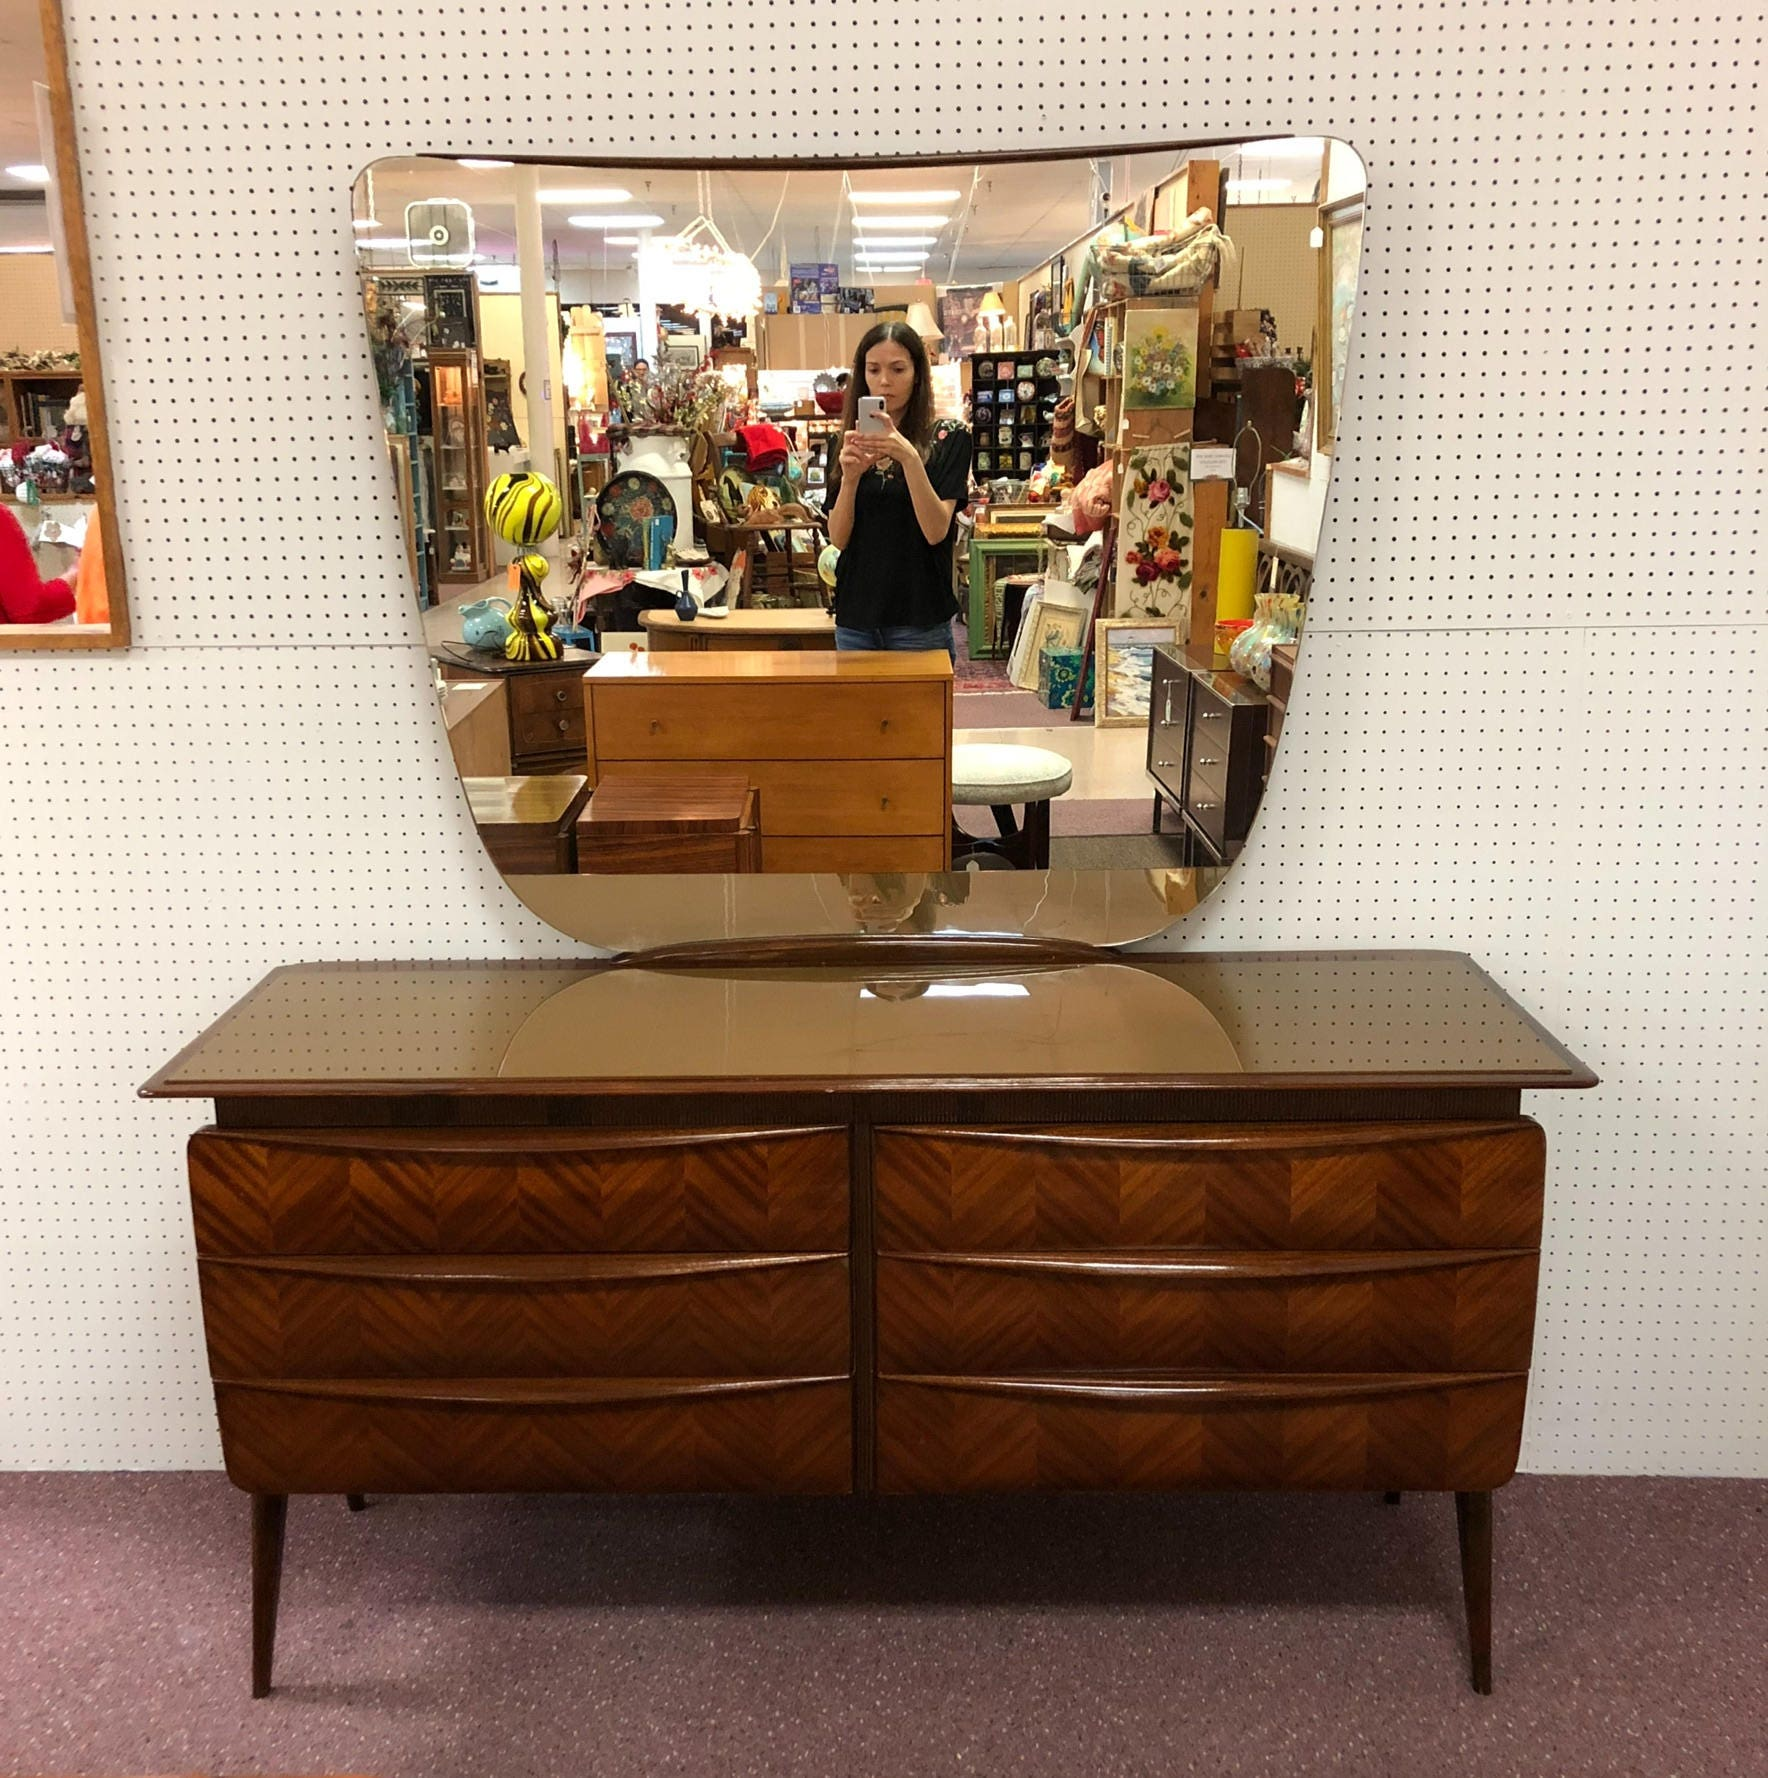 1950s Italian Mid Century Modern Mirrored Commode Entry Table